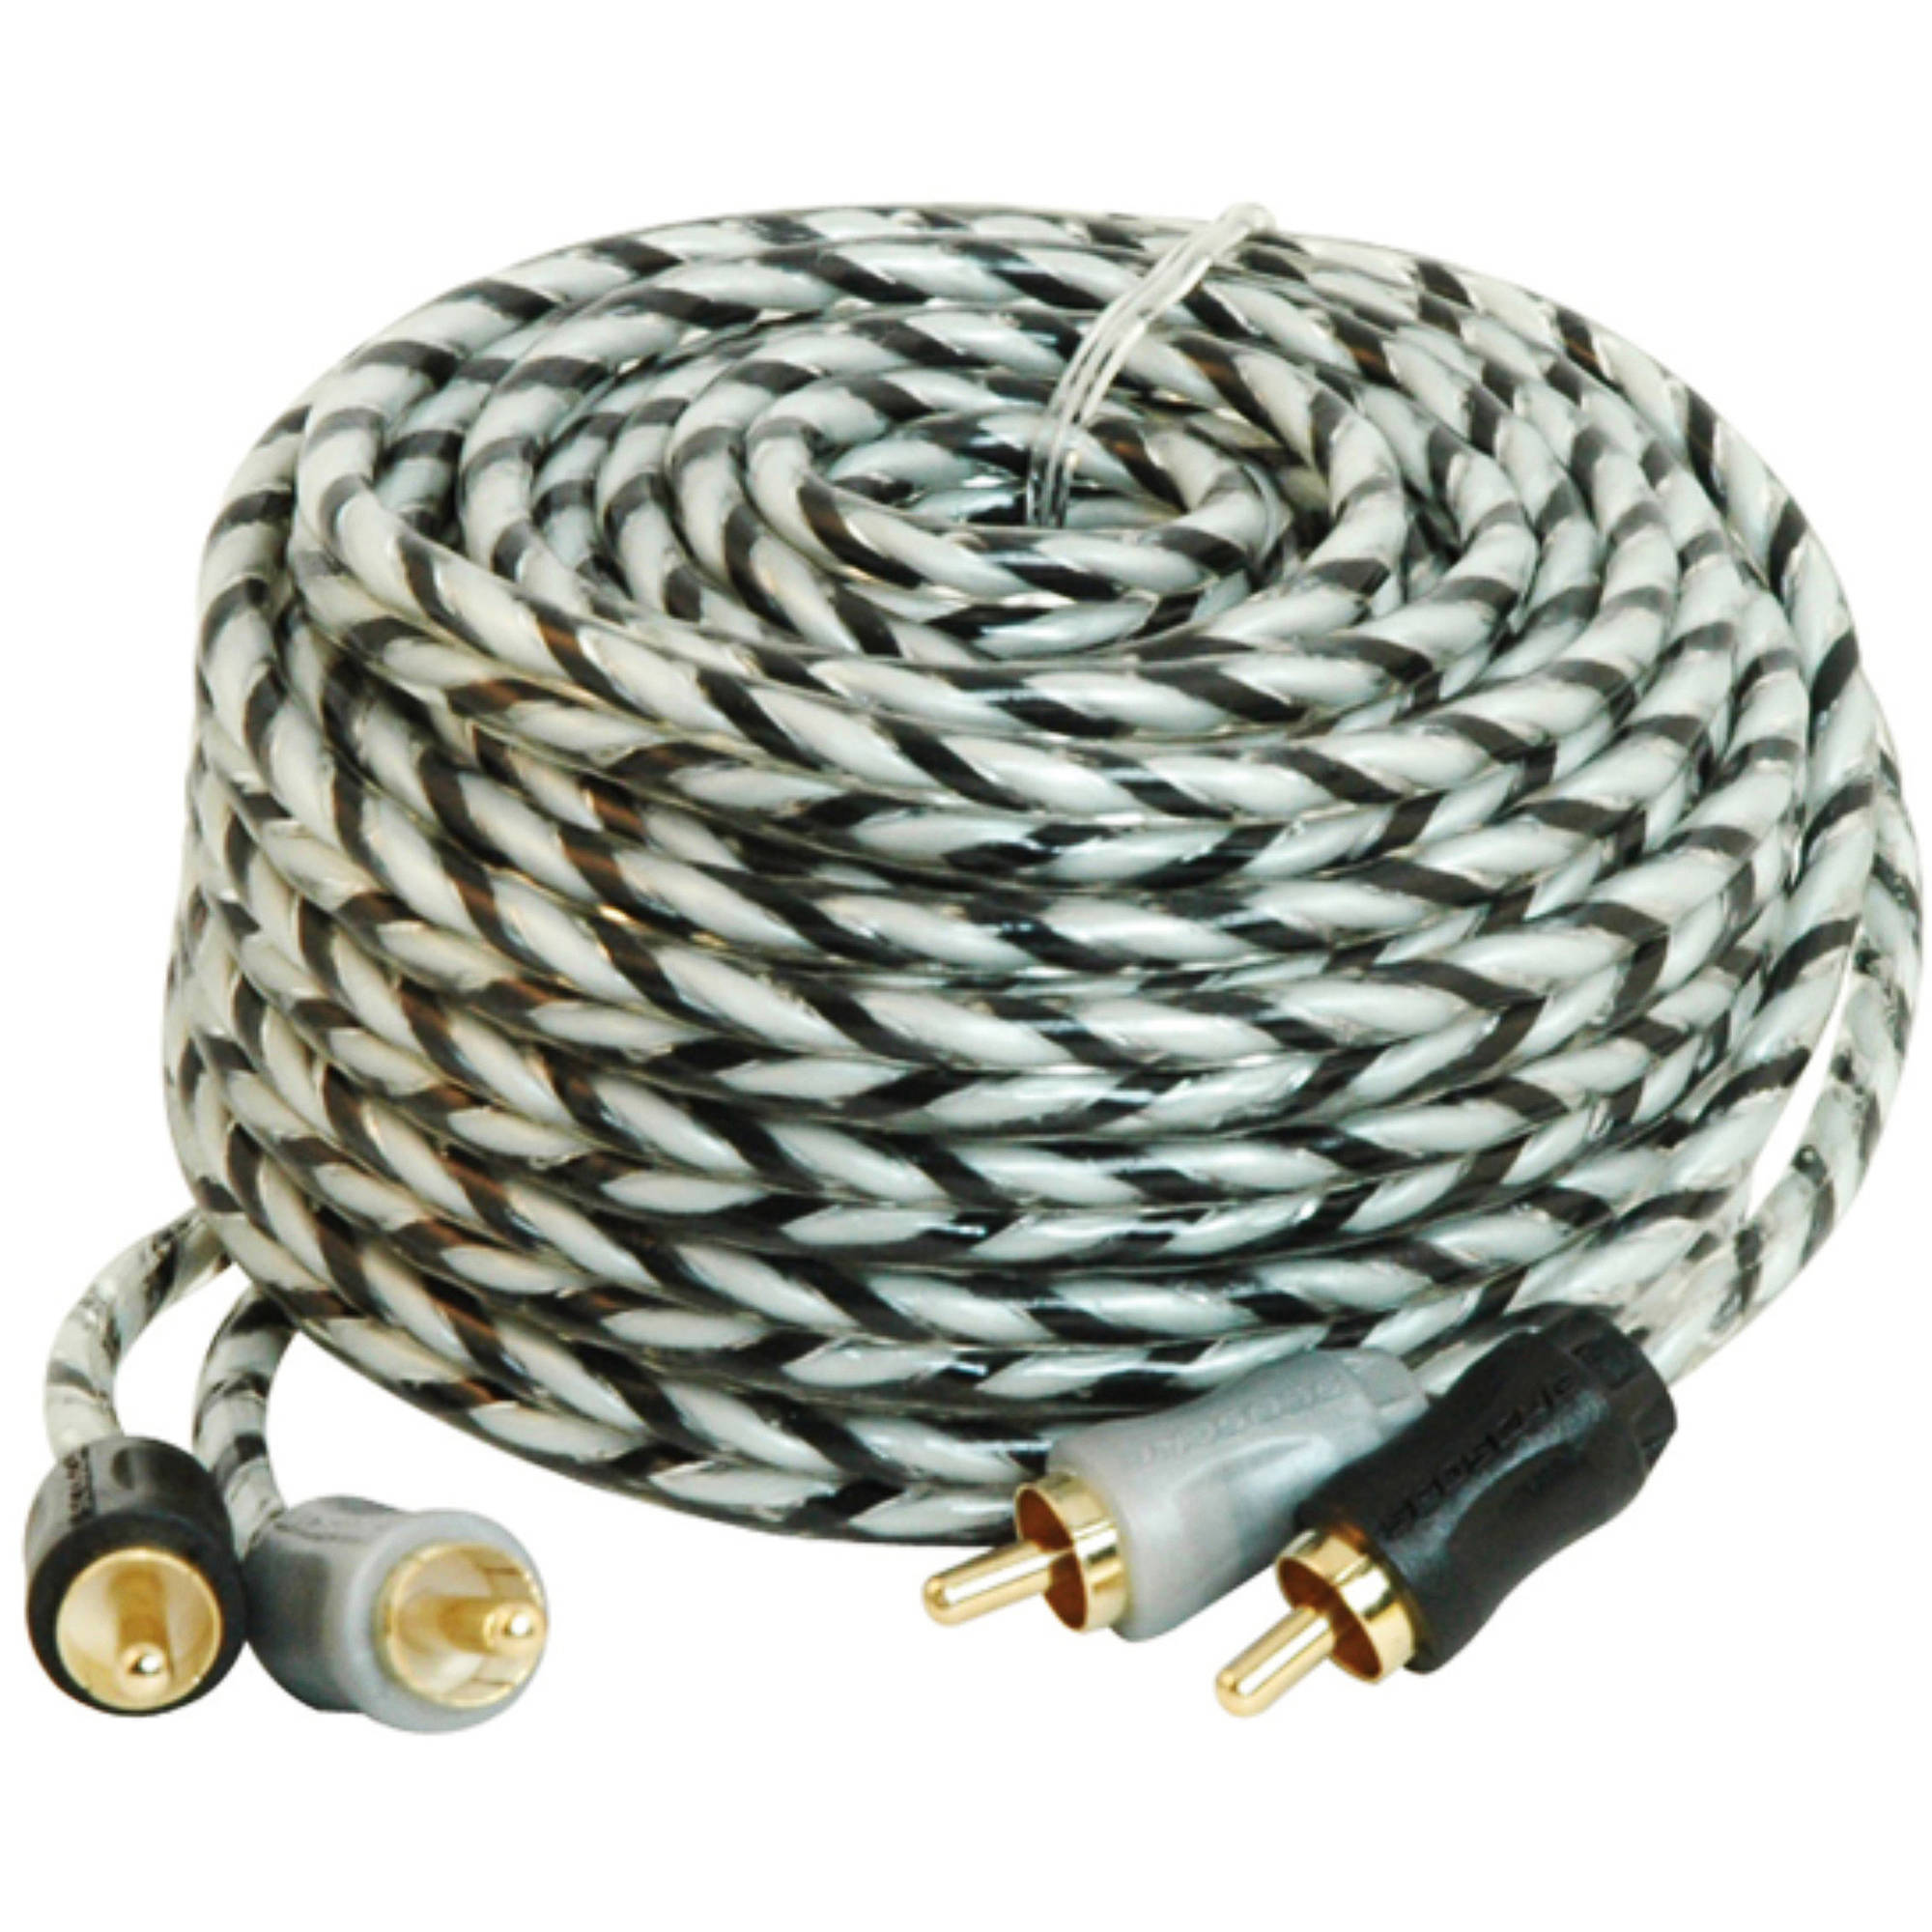 Scosche 12' RCA Audio Cable